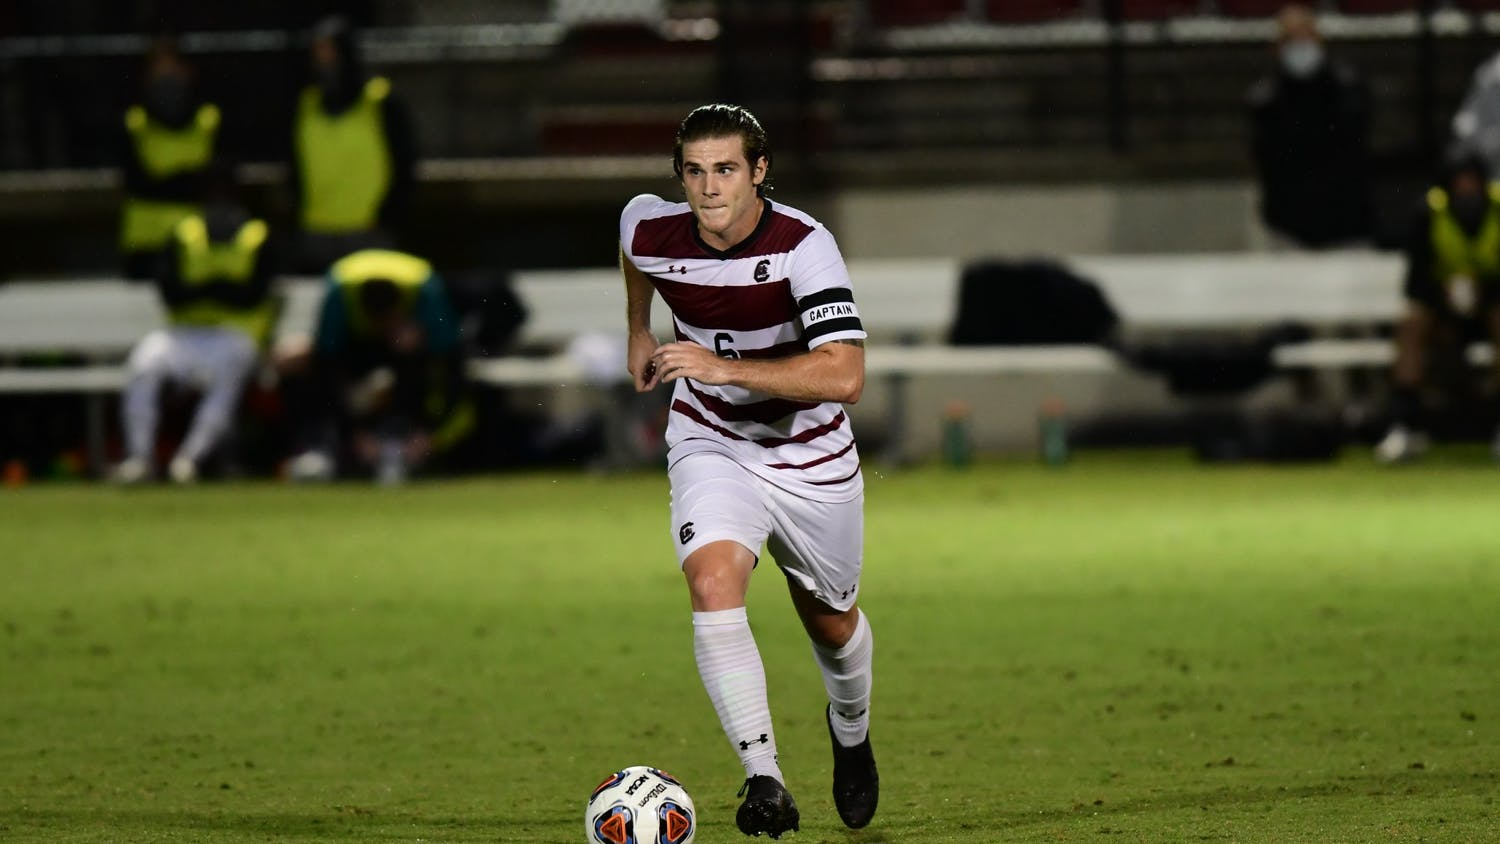 Gamecock redshirt senior Kyle Gurrieri runs toward the goal with the ball in his possession. South Carolina lost to Georgia State 3-1 Sept. 24, 2020.